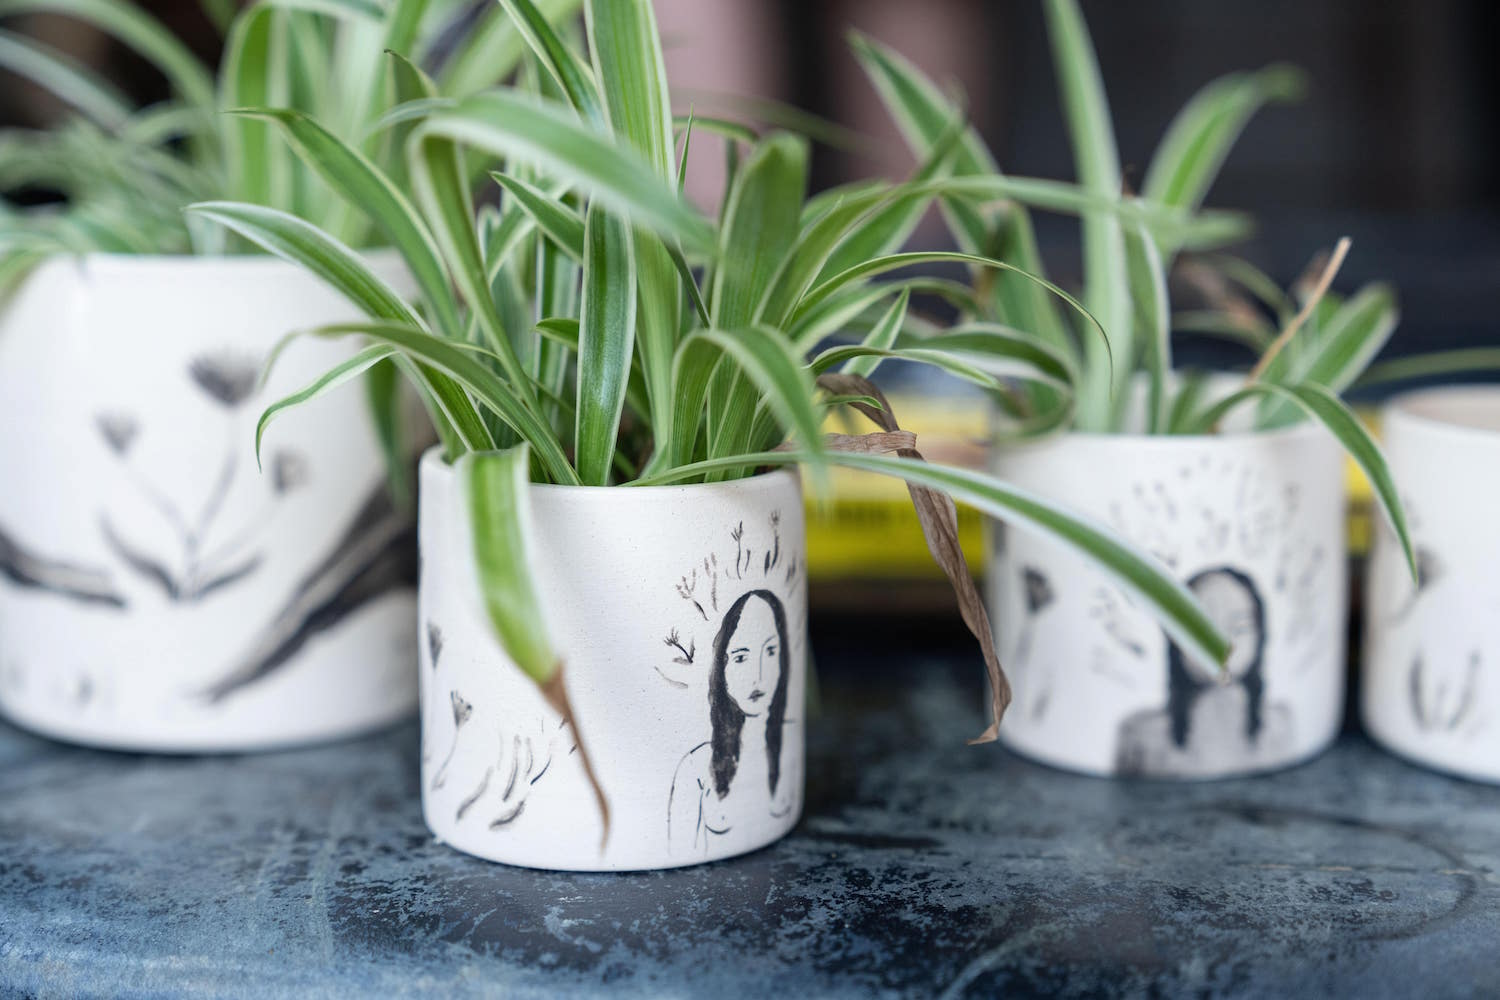 Julianna's own hand-painted ceramics filled with ferns and grasses - perfectly embodying her artistic style.